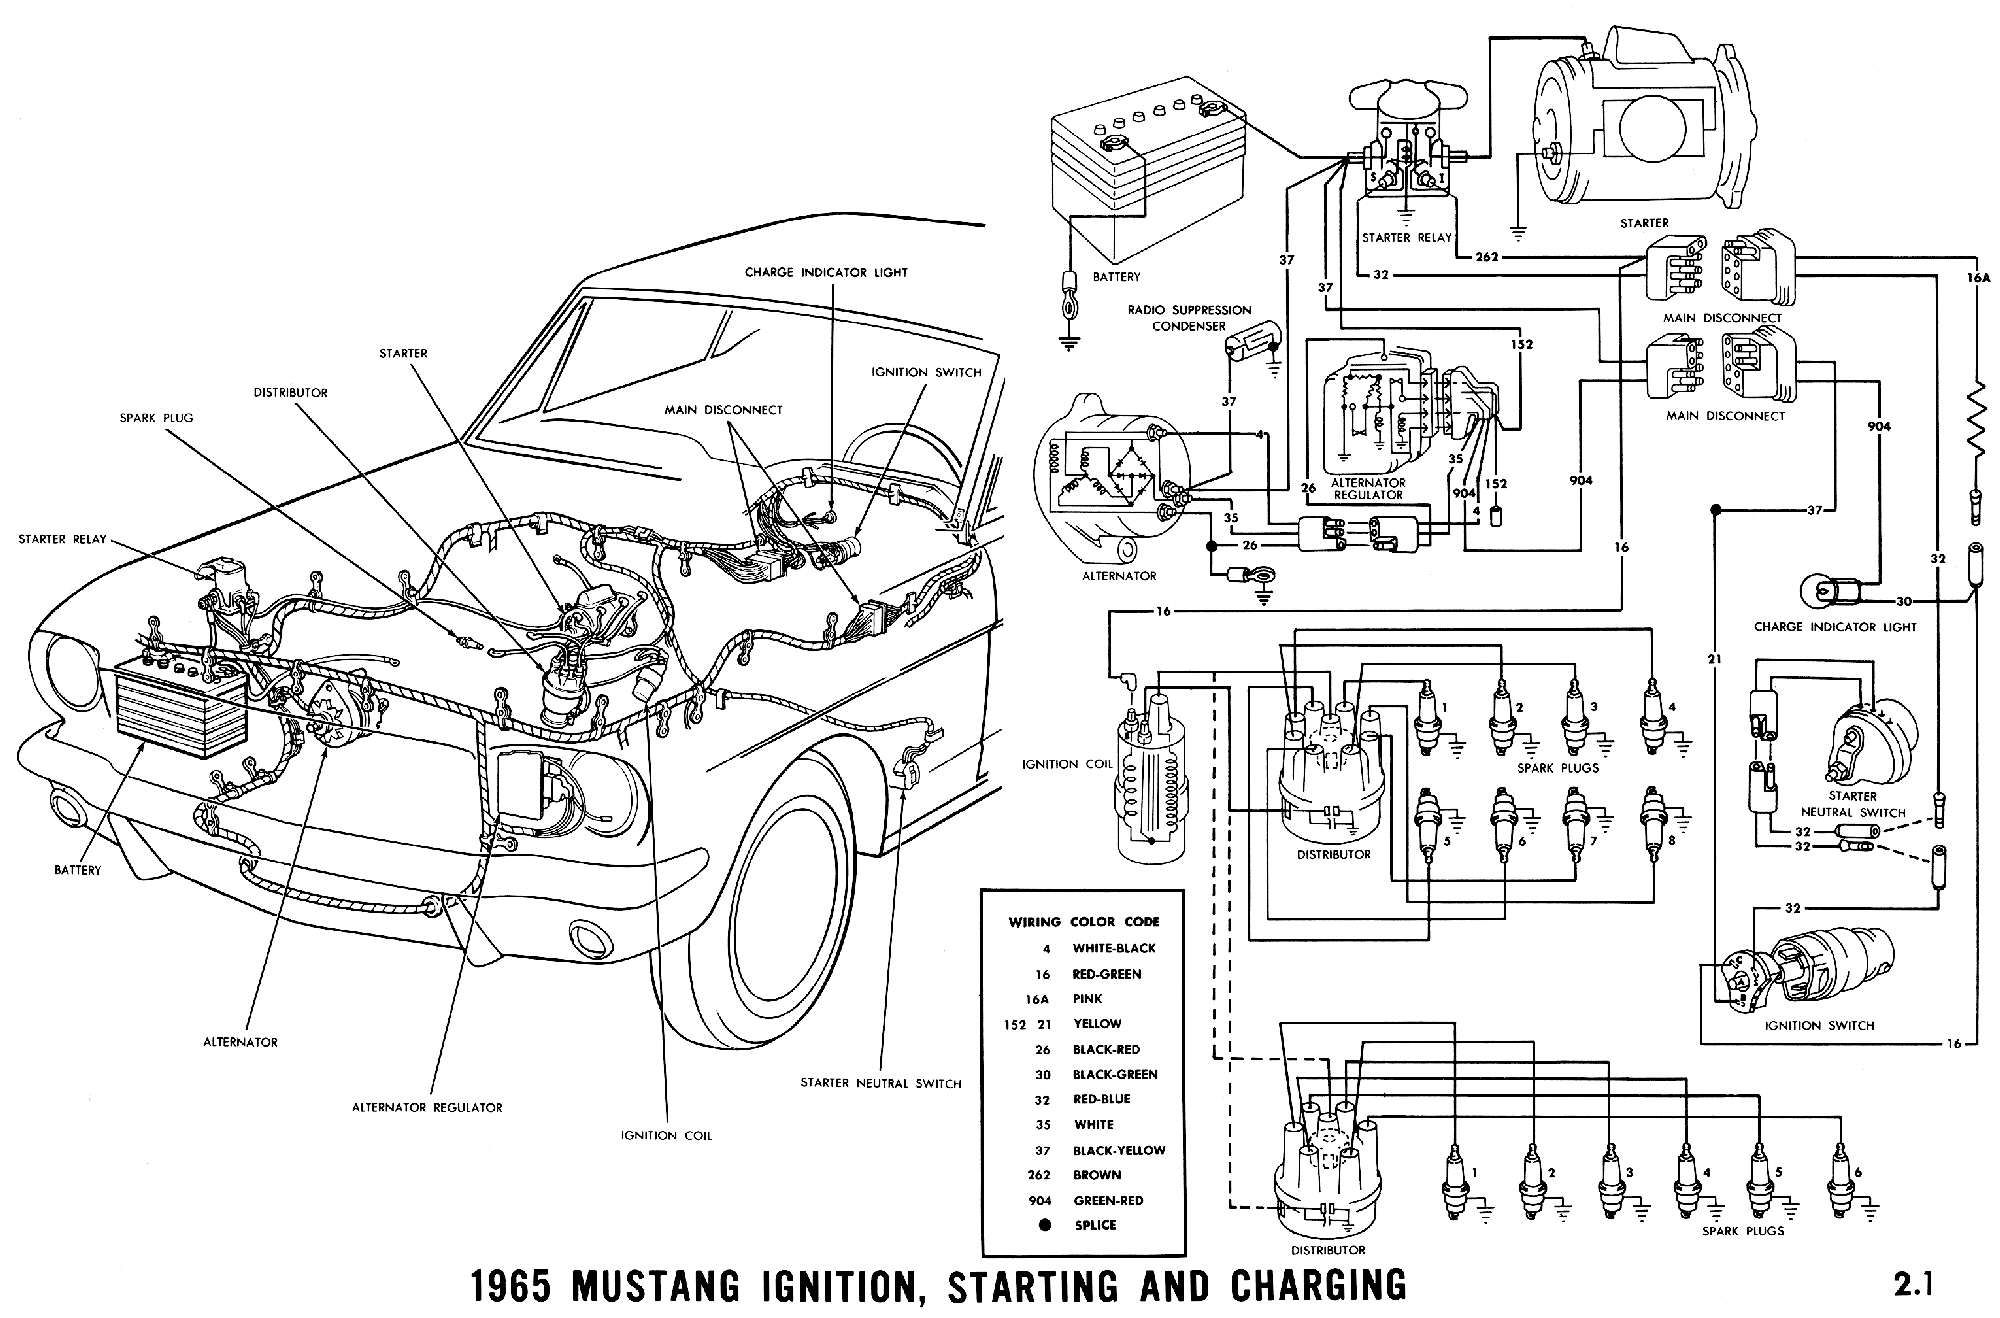 66 mustang wiring diagram schematic 1969 mustang wiring diagram schematic #12